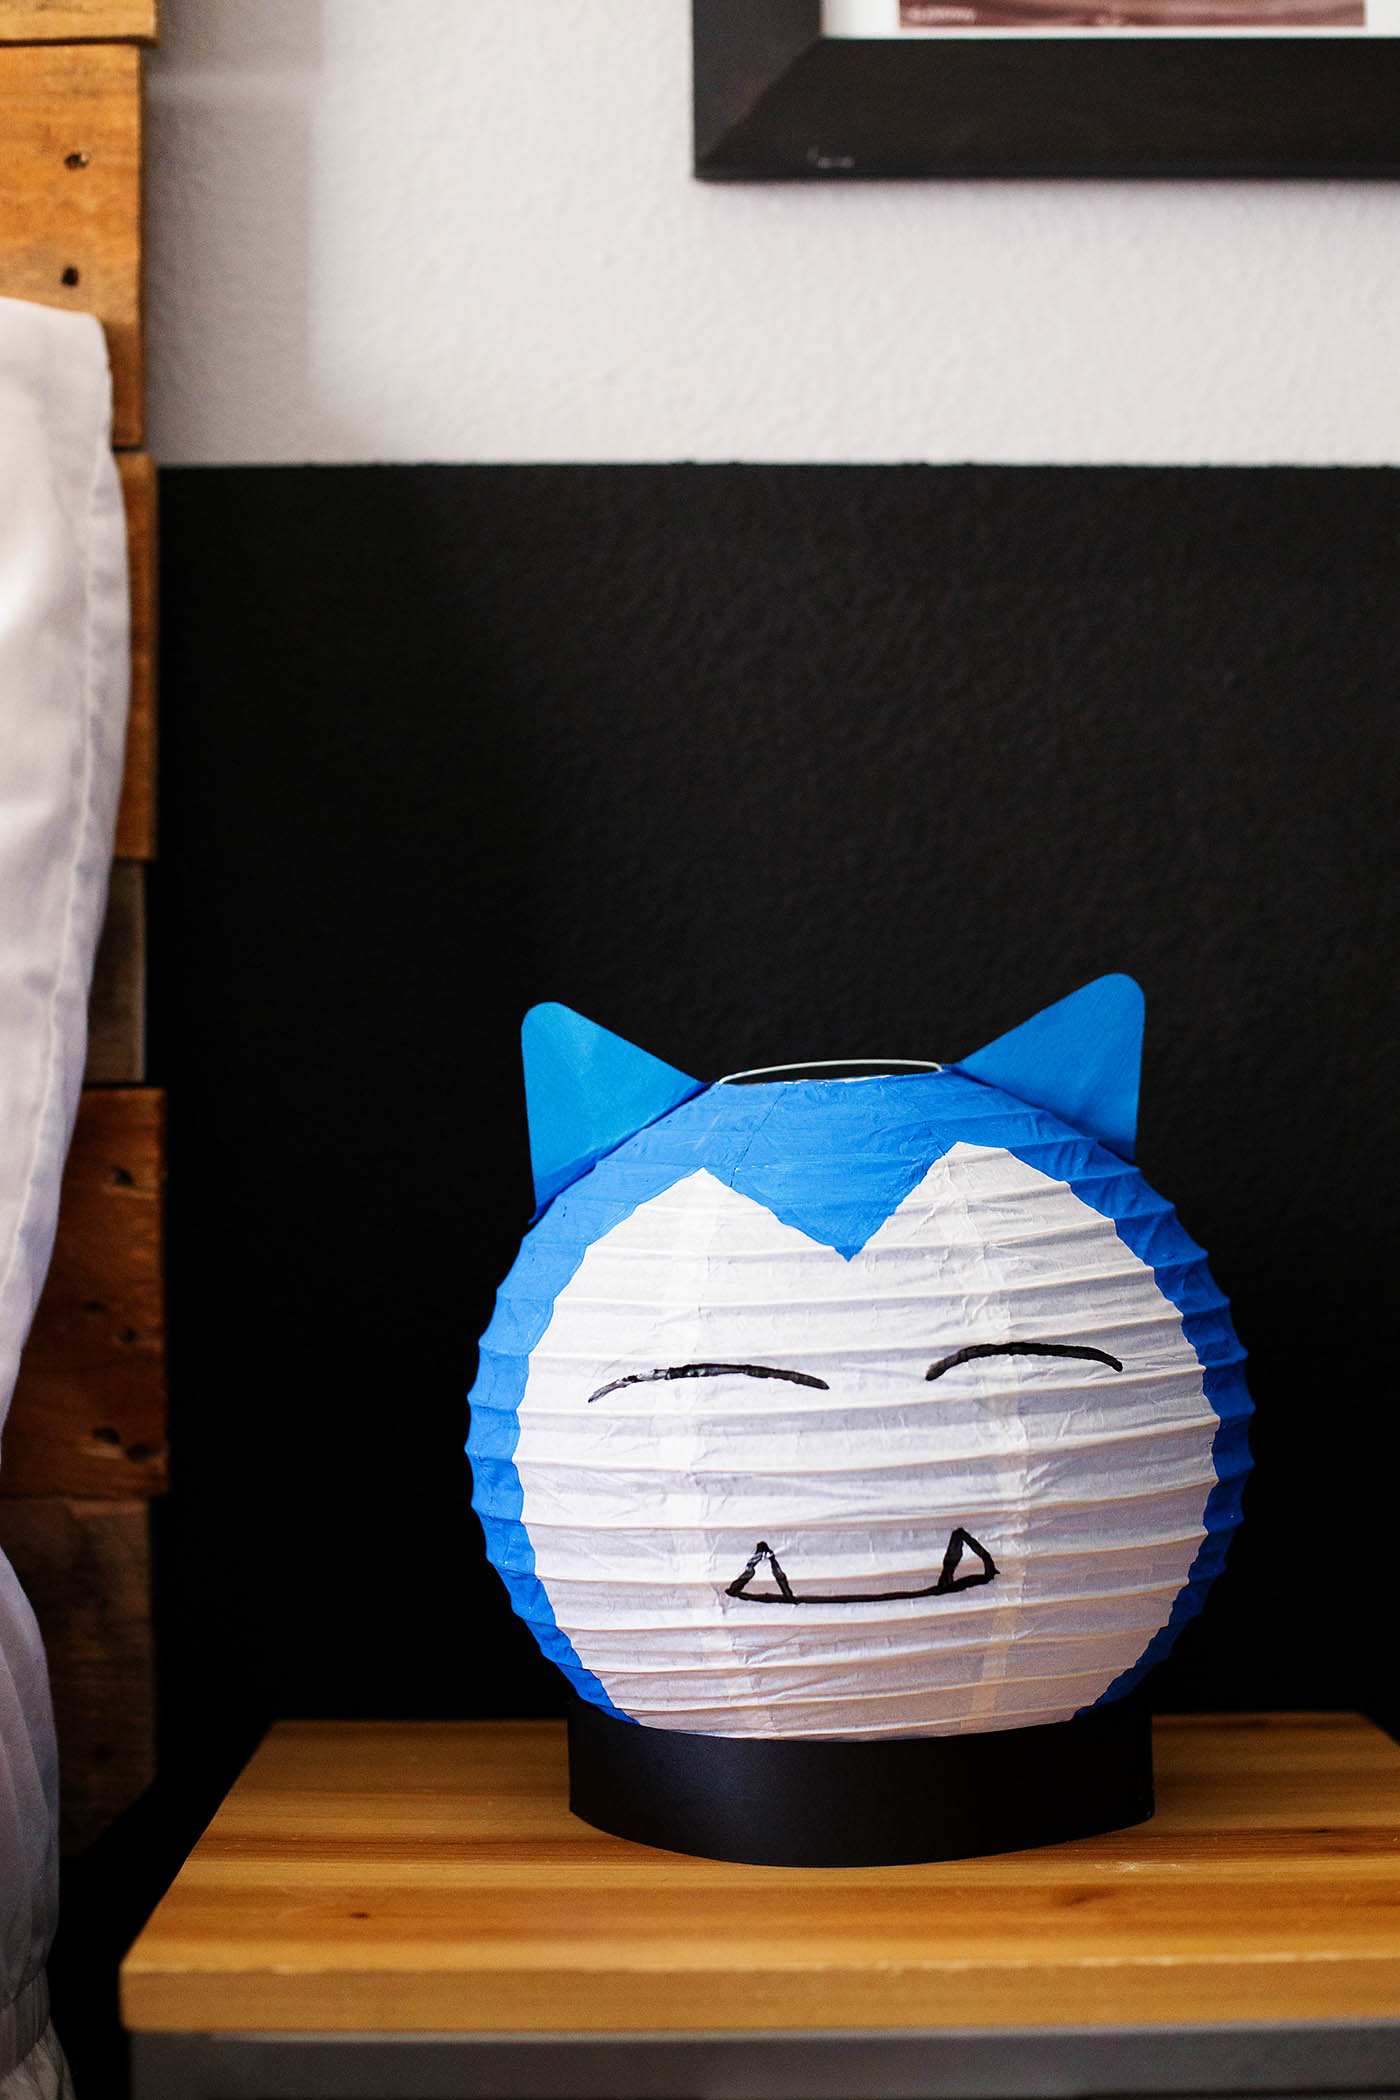 DIY Pokémon Inspired Snorlax Lantern - a fun craft idea for Pokémon and Pokémon Go fans!